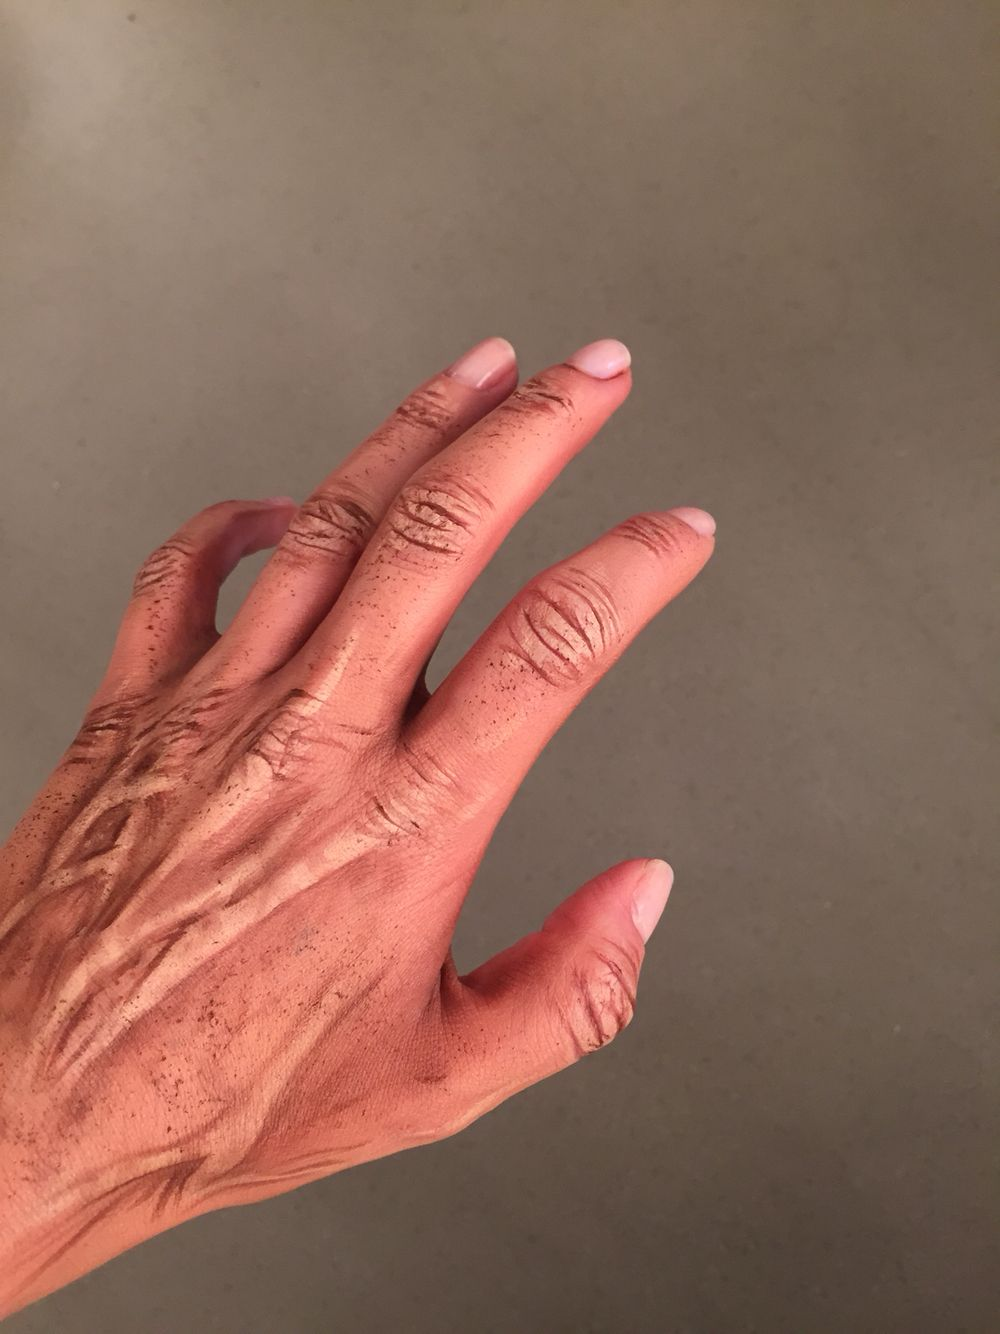 Old age effect makeup on hands, including age spots for makeup